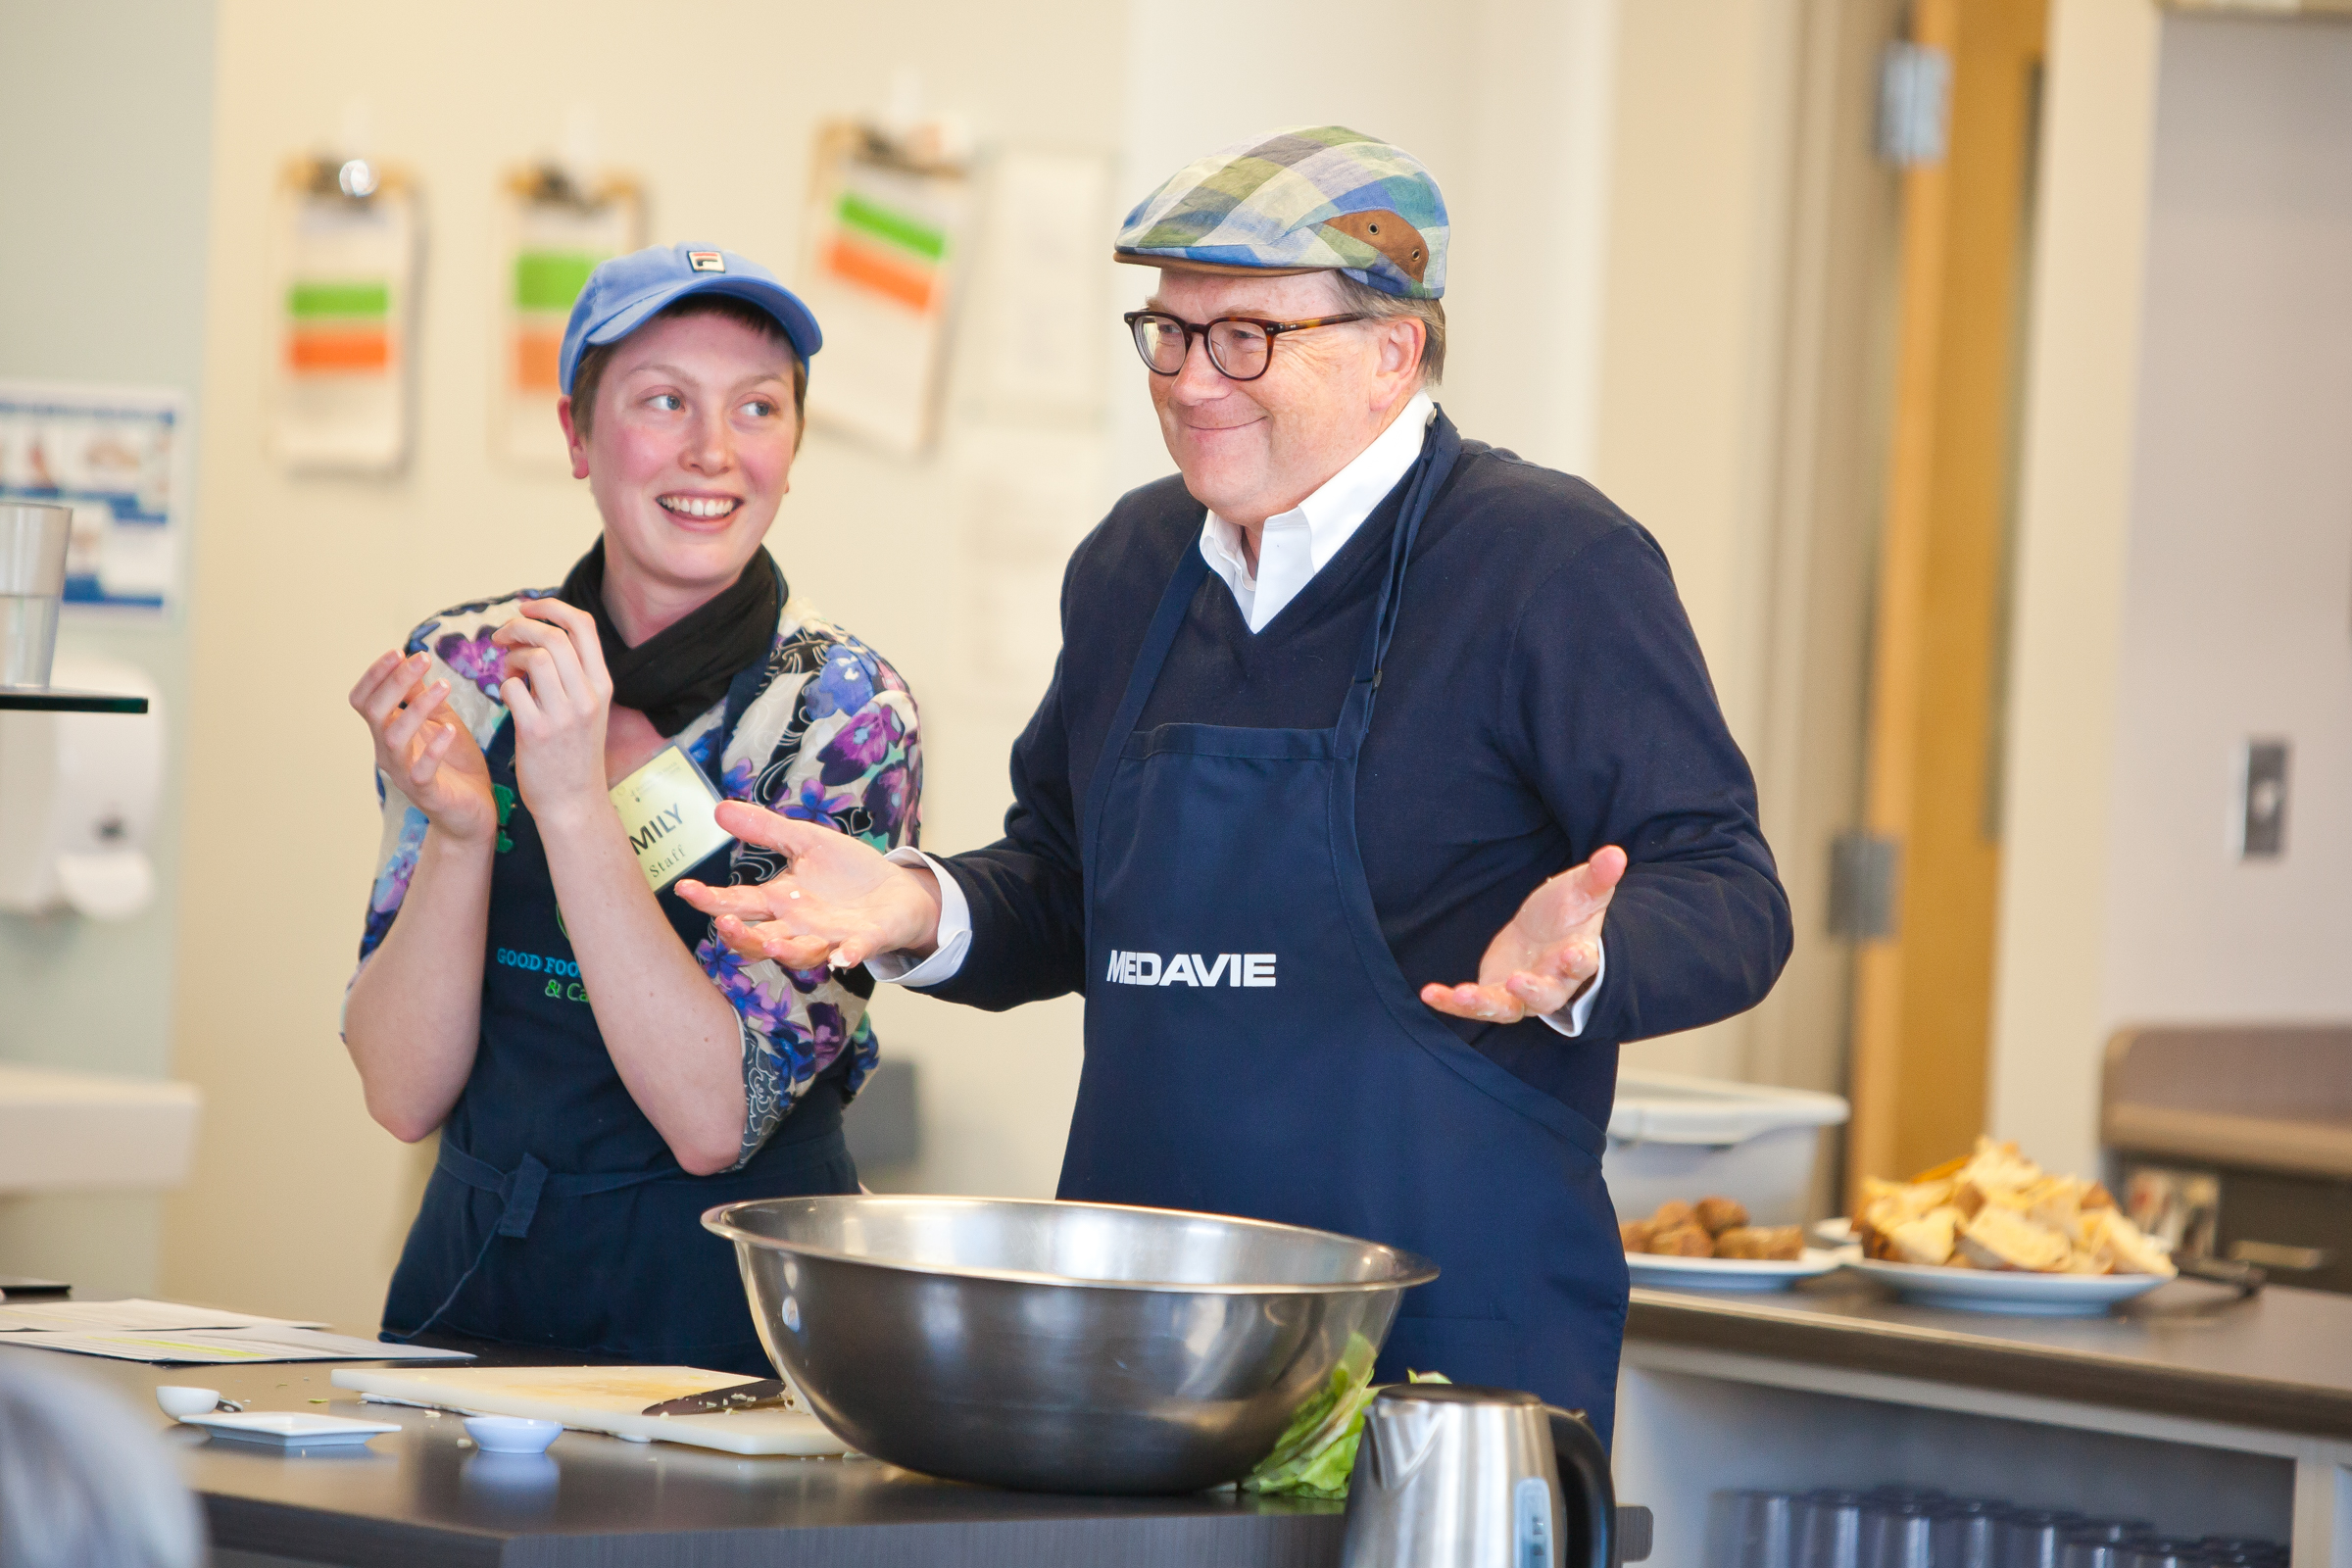 Last week supporters from Medavie came and helped with the Food Demo. Medavie has generously supported the Dartmouth Family Centre/Dartmouth North Community Food Centre since 2016 and just announced a further $120,000 in funding for Dartmouth Family Centre/Dartmouth North Community Food Centre over the next three years.